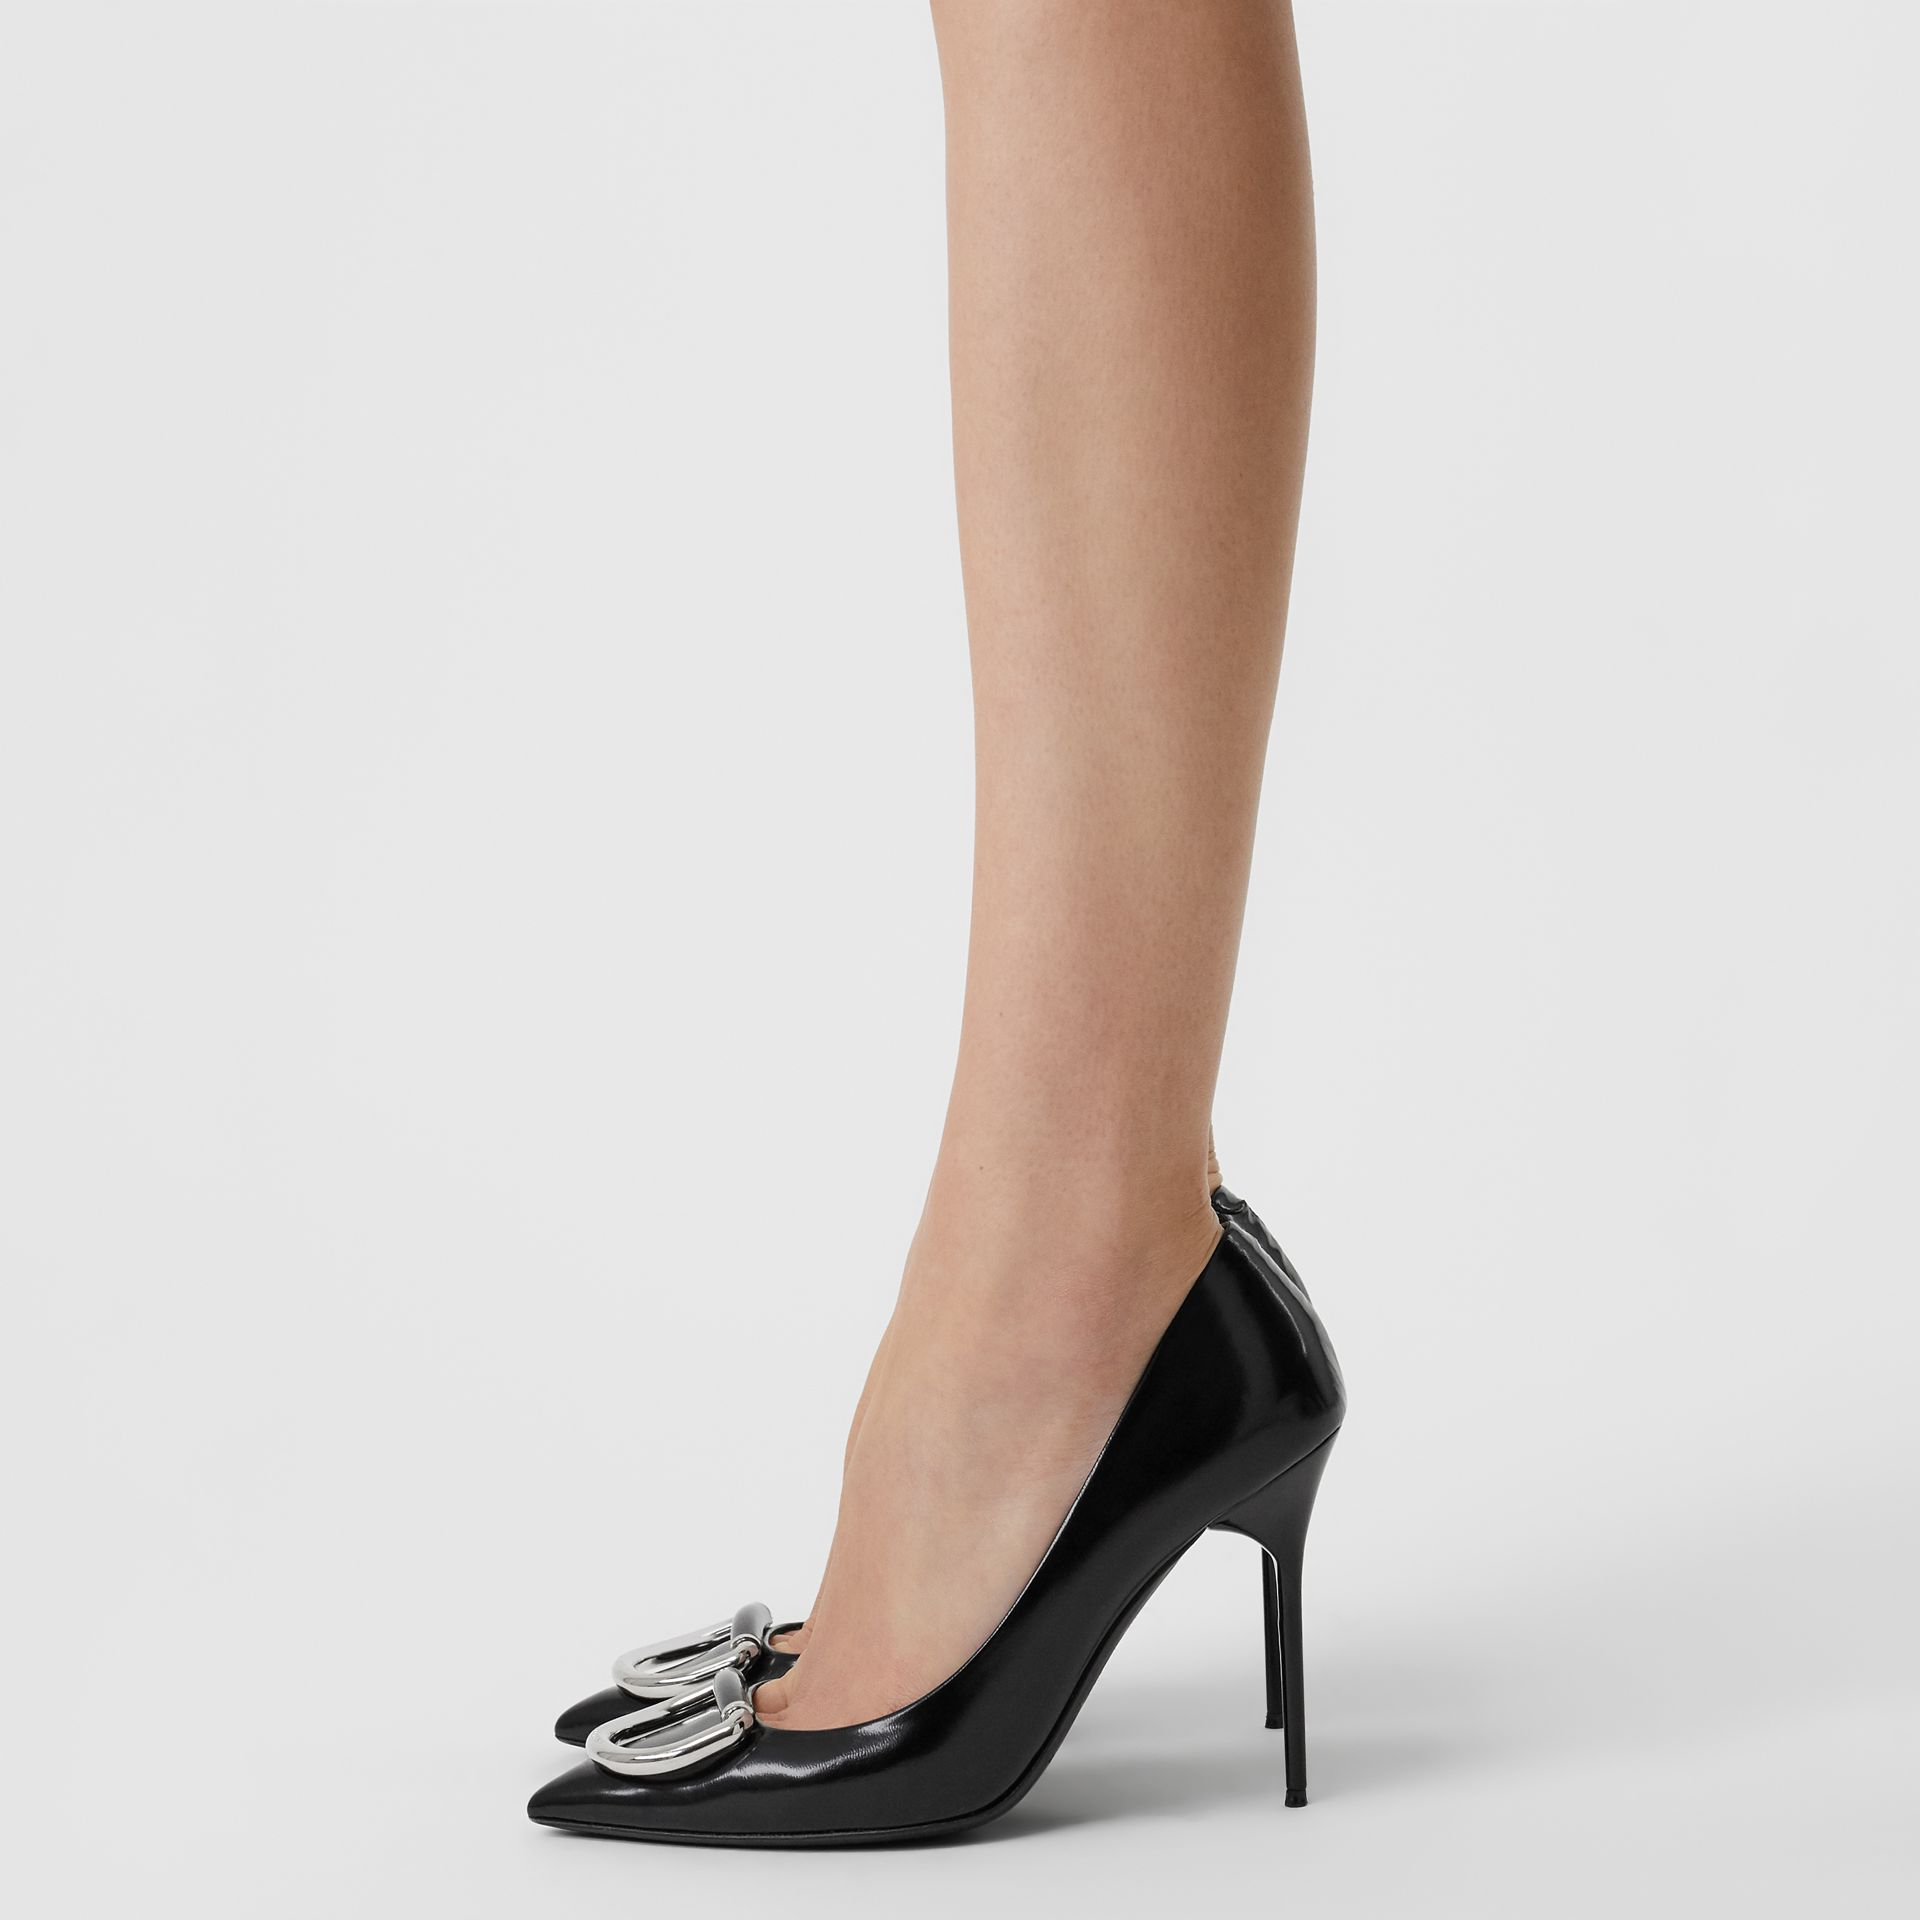 The Patent Leather D-ring Stiletto in Black/nickel - Women | Burberry Australia - gallery image 2